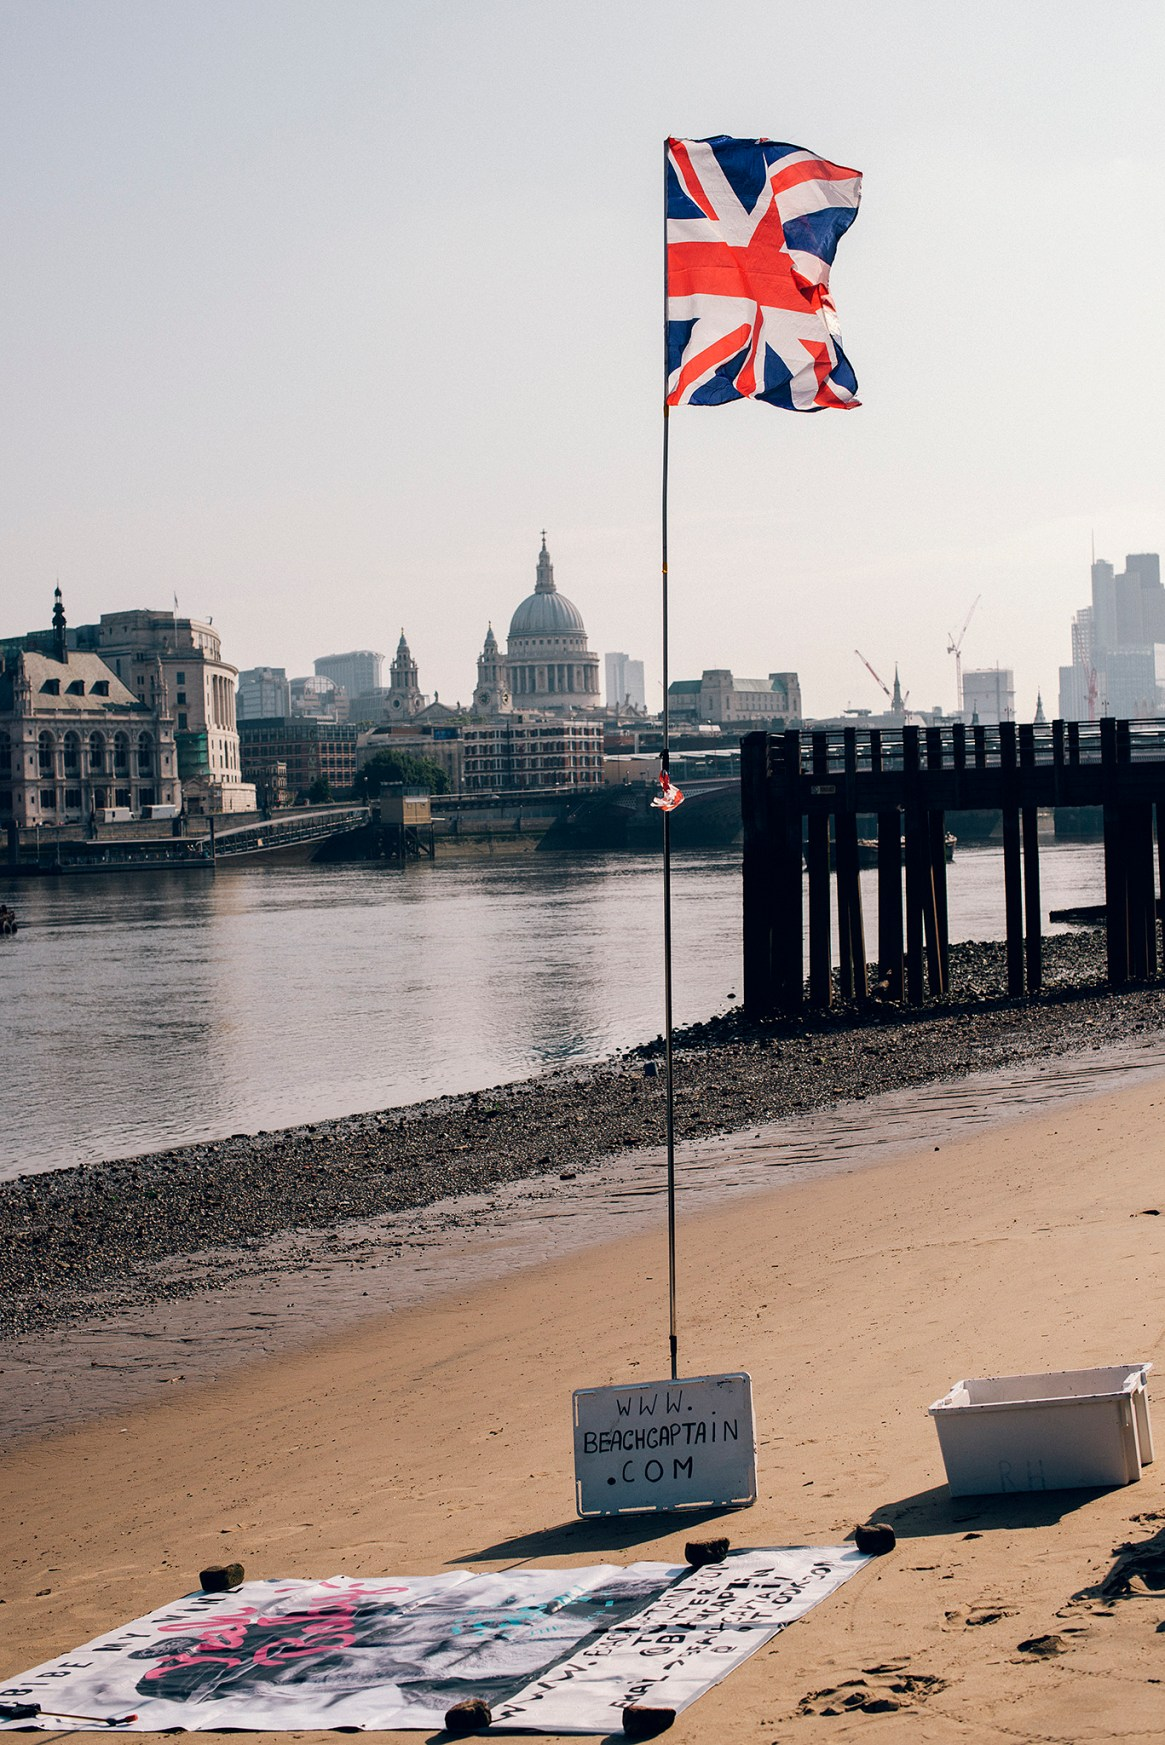 Union Jack waves from a pole planted in the sand next to the River Thames, with St Paul's Cathedral and the City of London in the background at sunrise